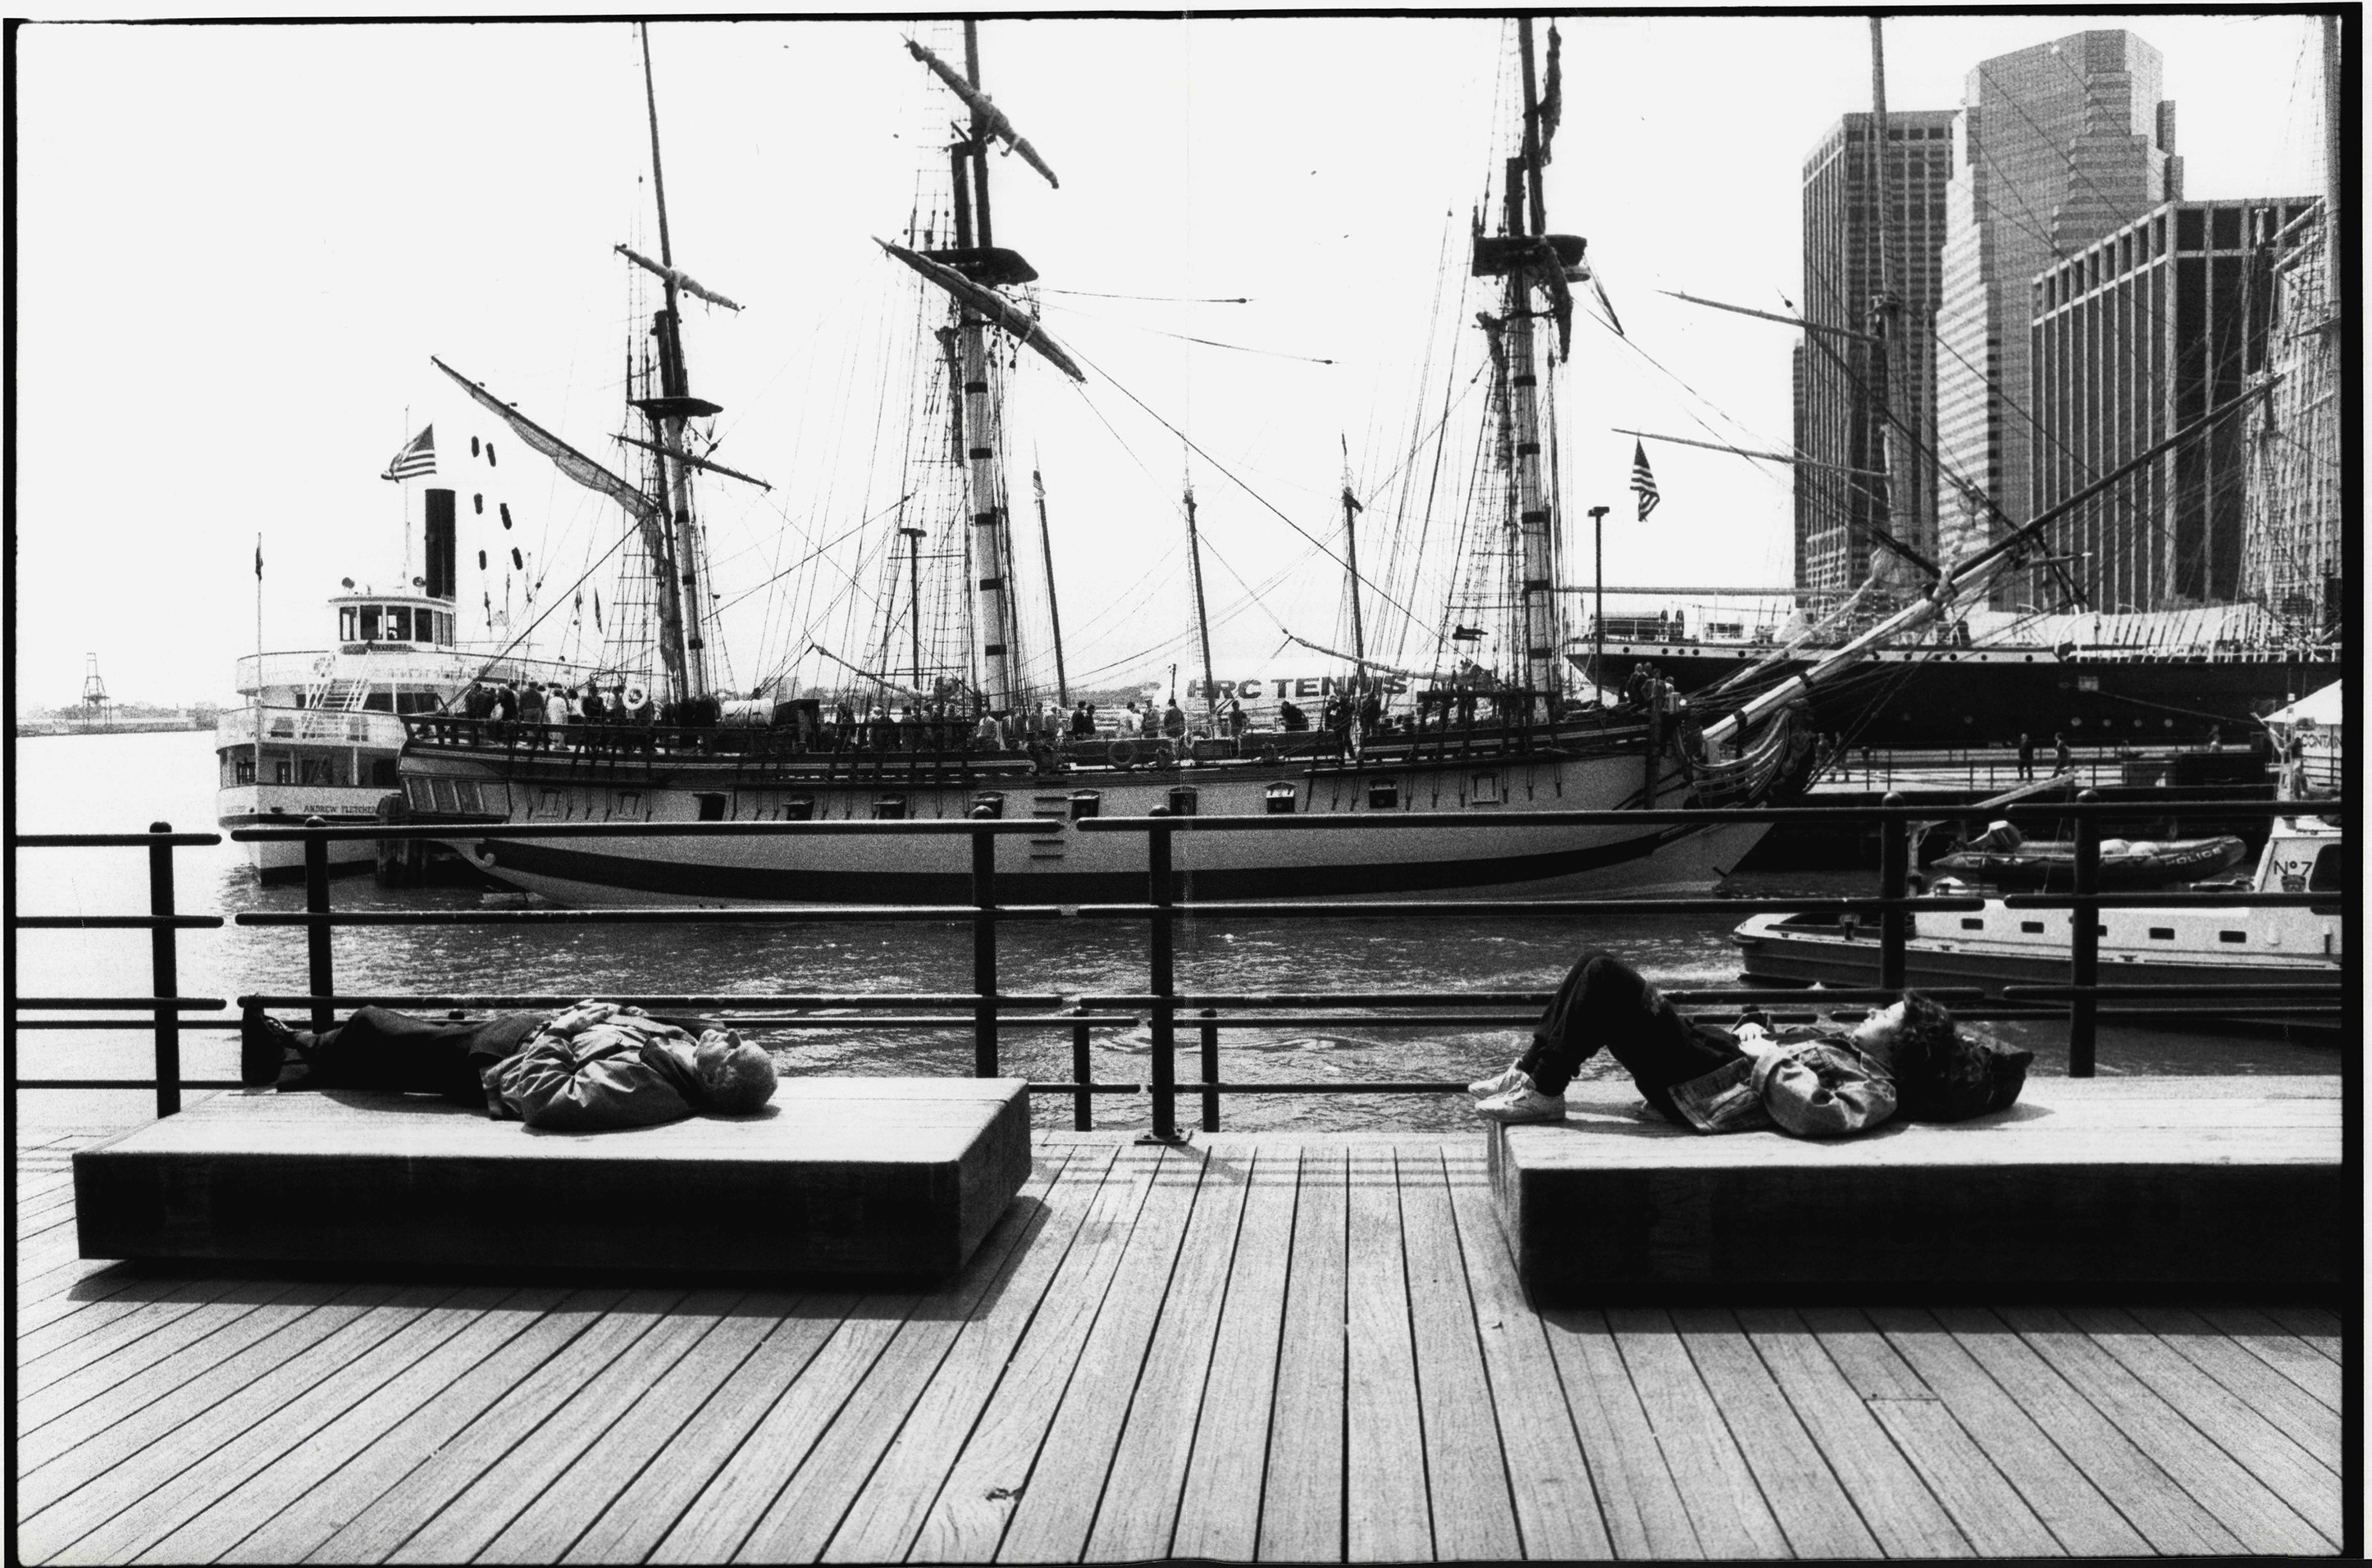 Two people sunning themselves in front of boats in New York